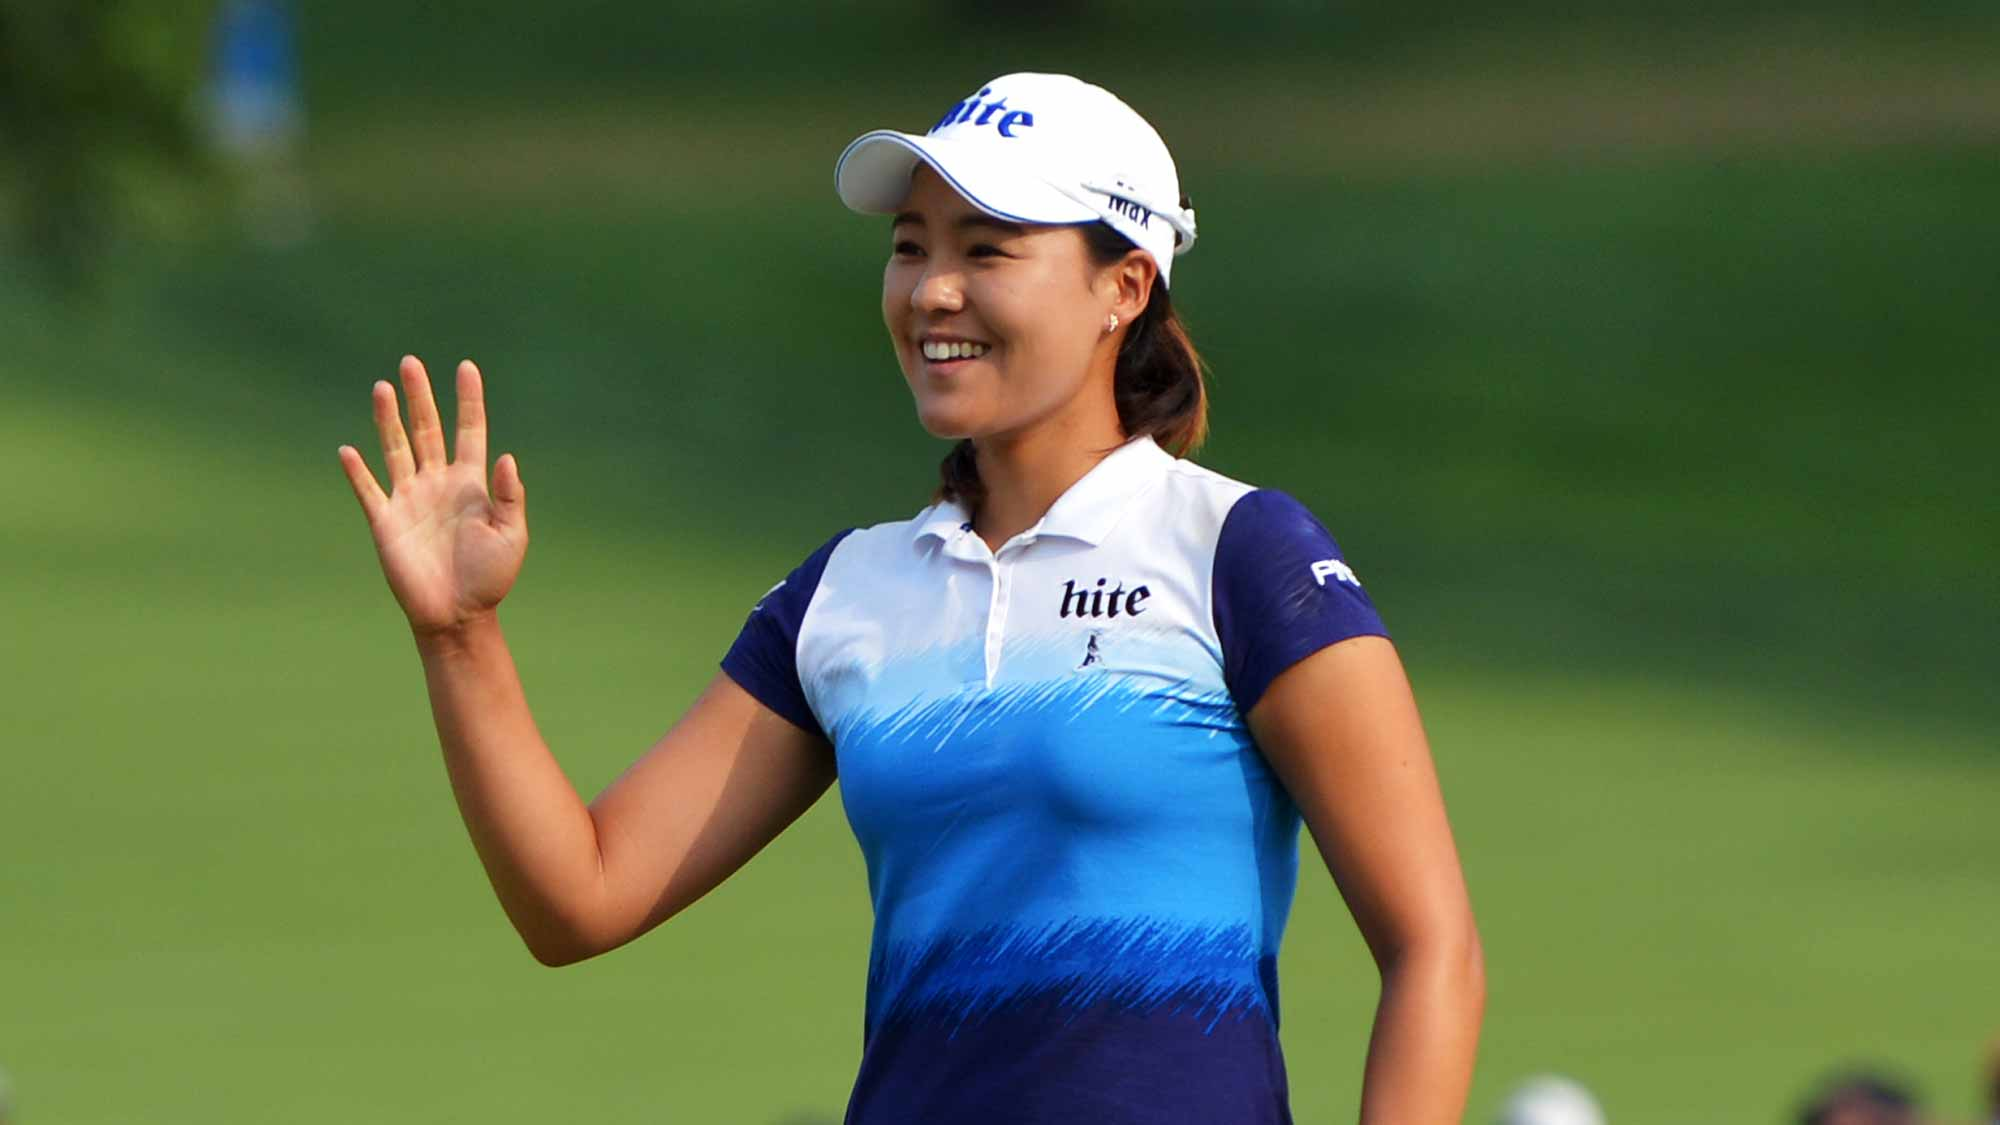 In Gee Chun of South Korea waves to the gallery after making birdie on the 16th hole during the final round of the U.S. Women's Open at Lancaster Country Club